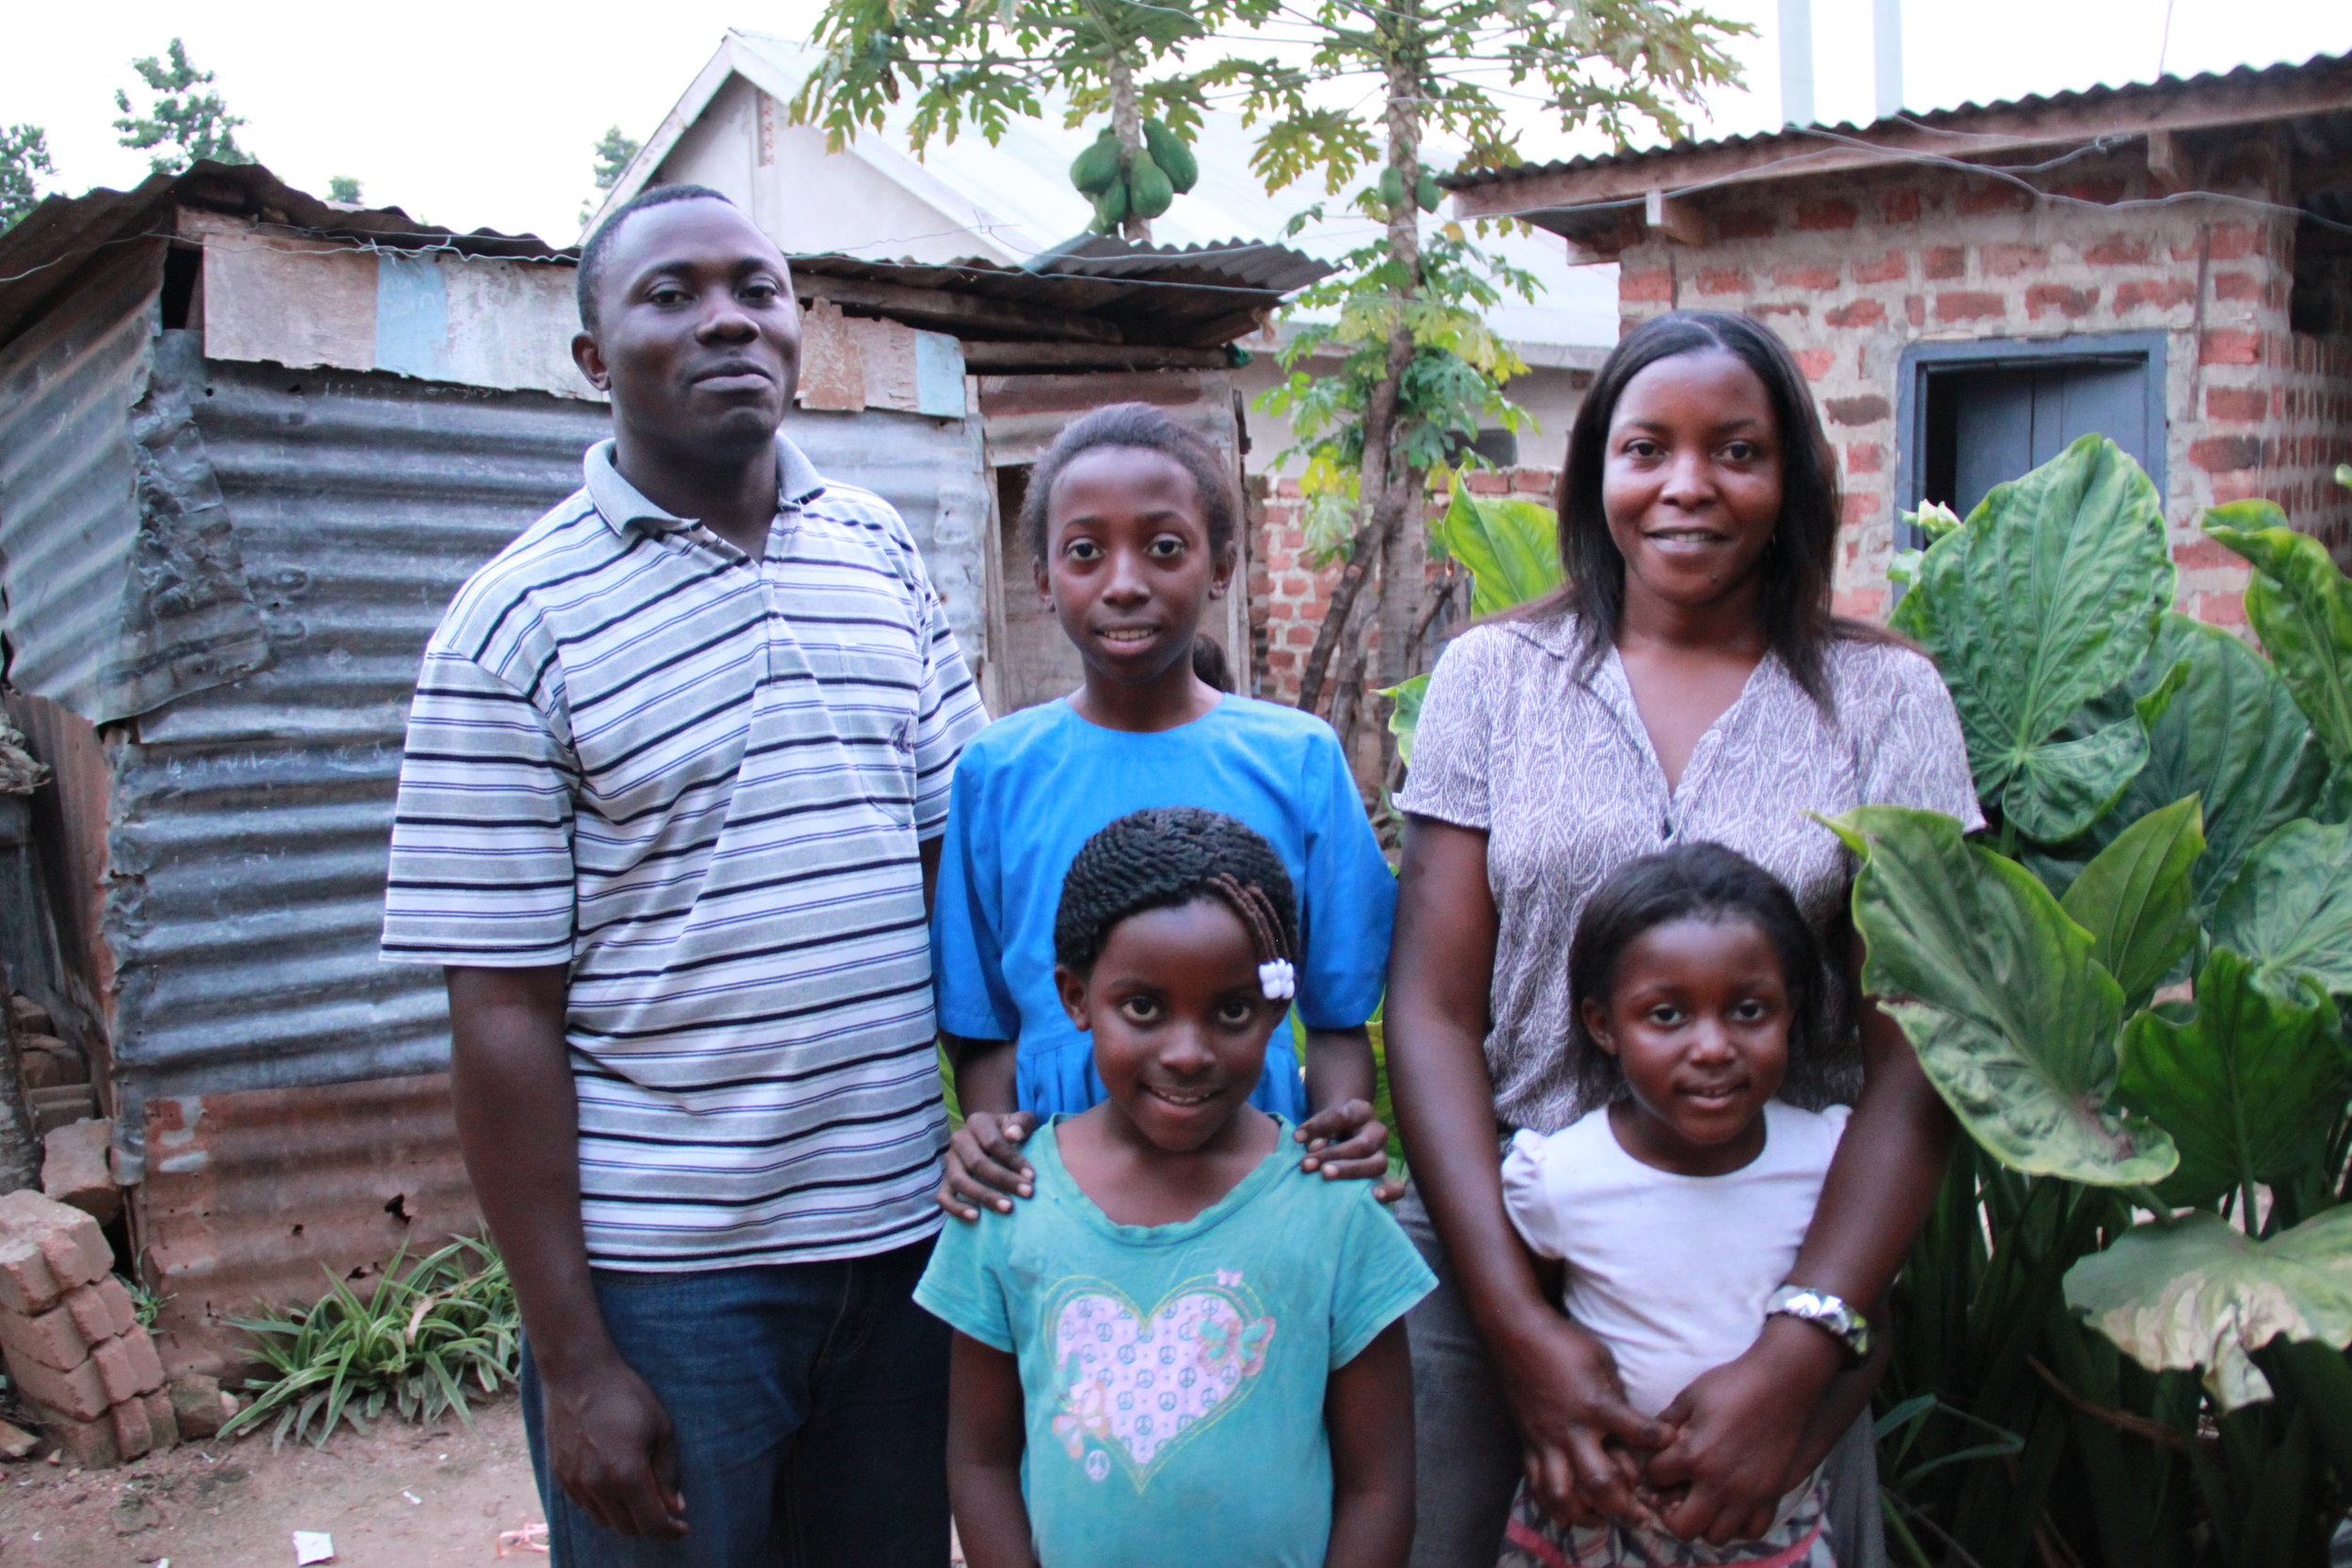 The Ssemakula Family, from left to right: Lawrence, Quinn, Genesis, Josephine, Genevieve. Quinn, middle, suffers from Sickle Cell Anemia.